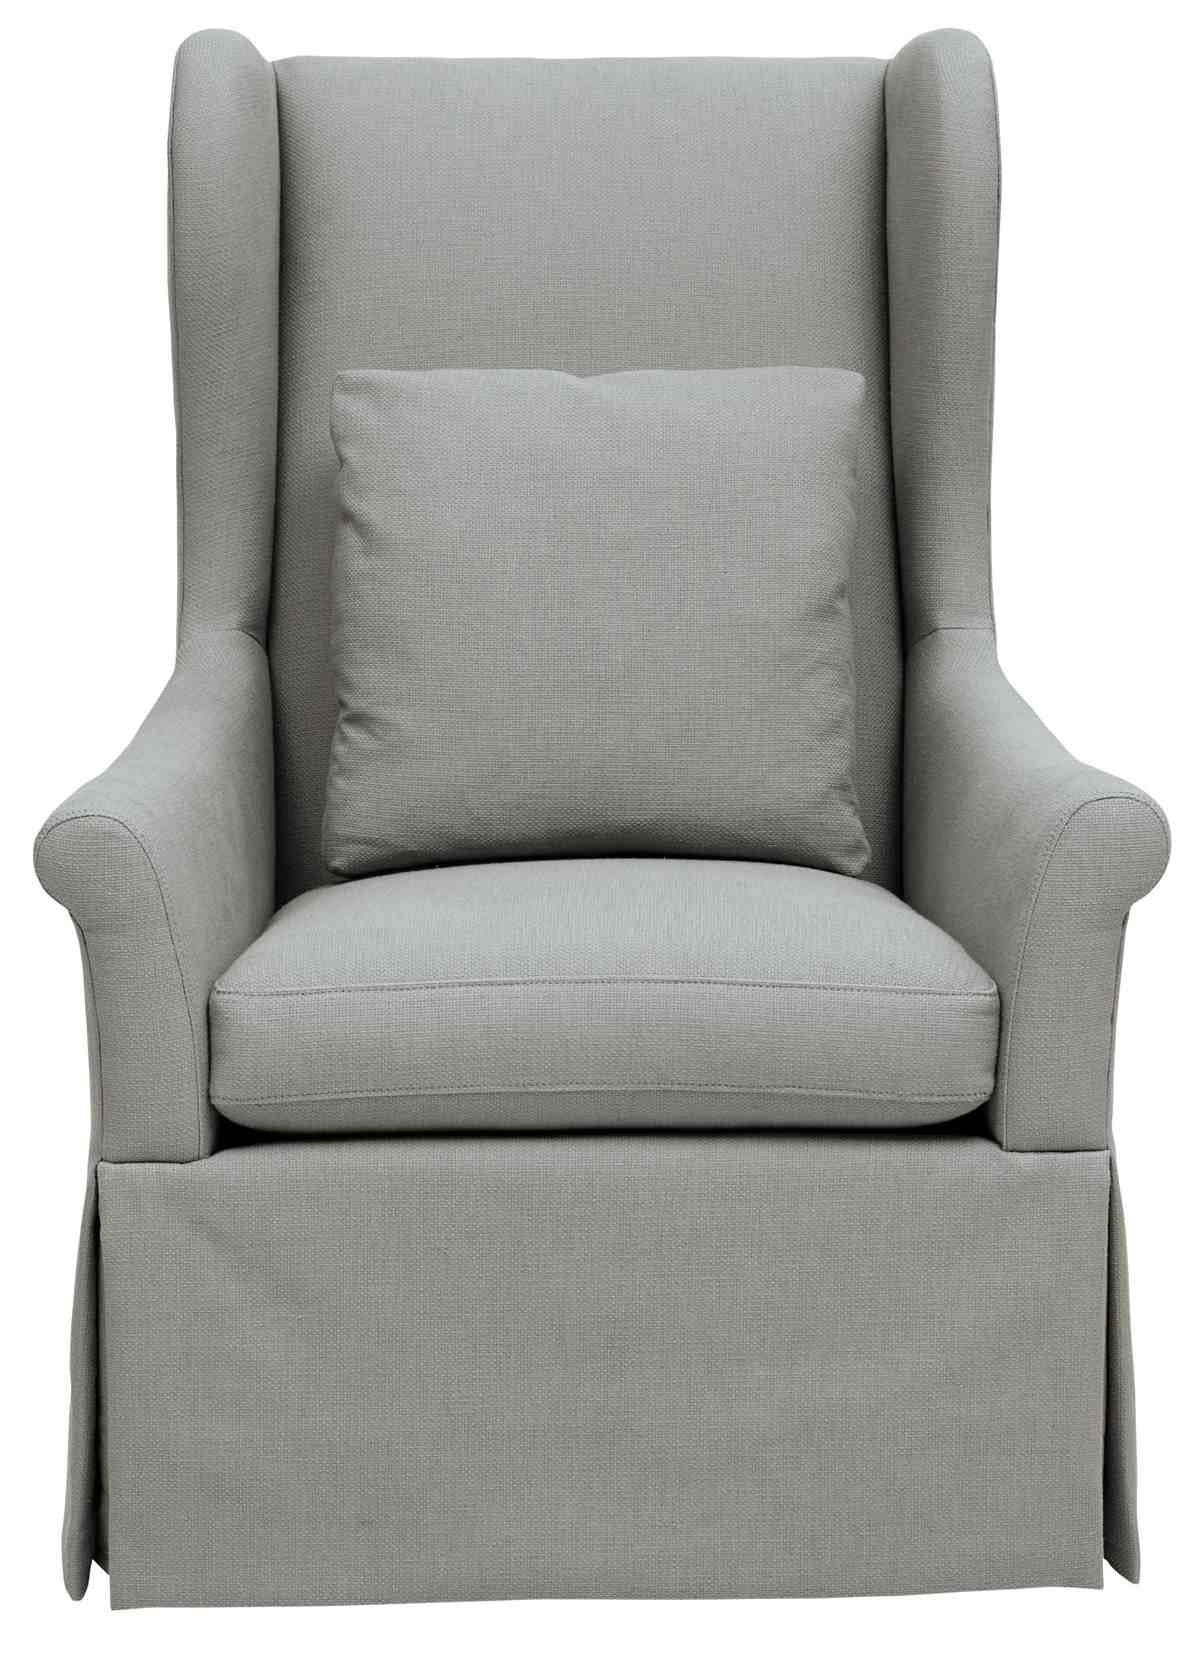 Matthew Chair